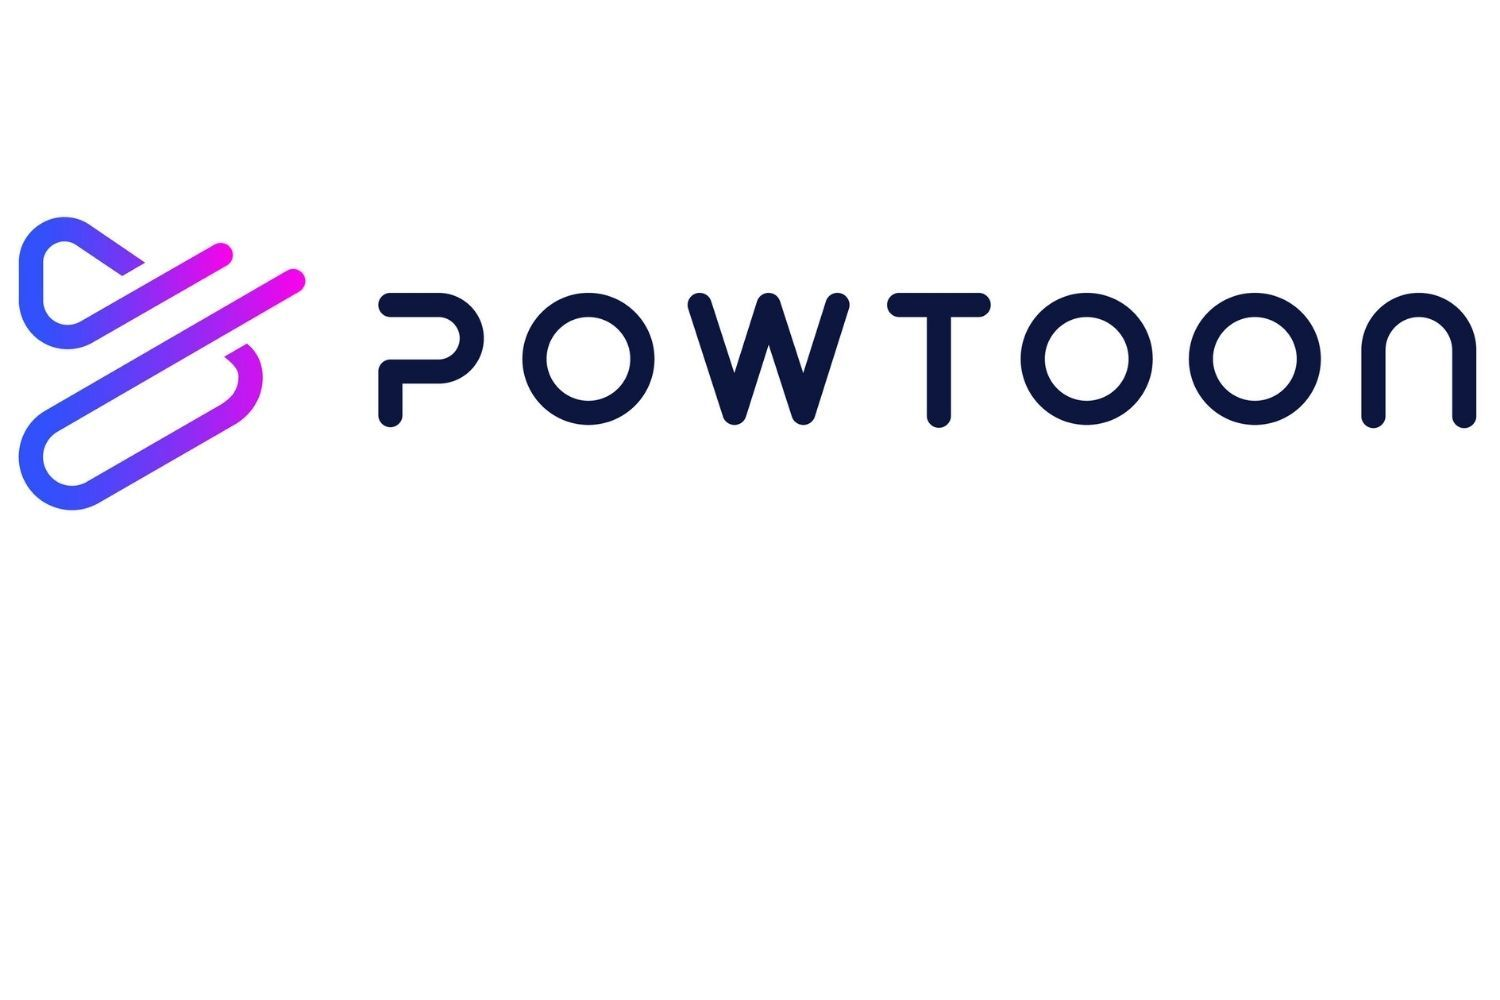 Learn how to use PowToon to produce explainer videos that highlight your topic, brand, product, or ideas